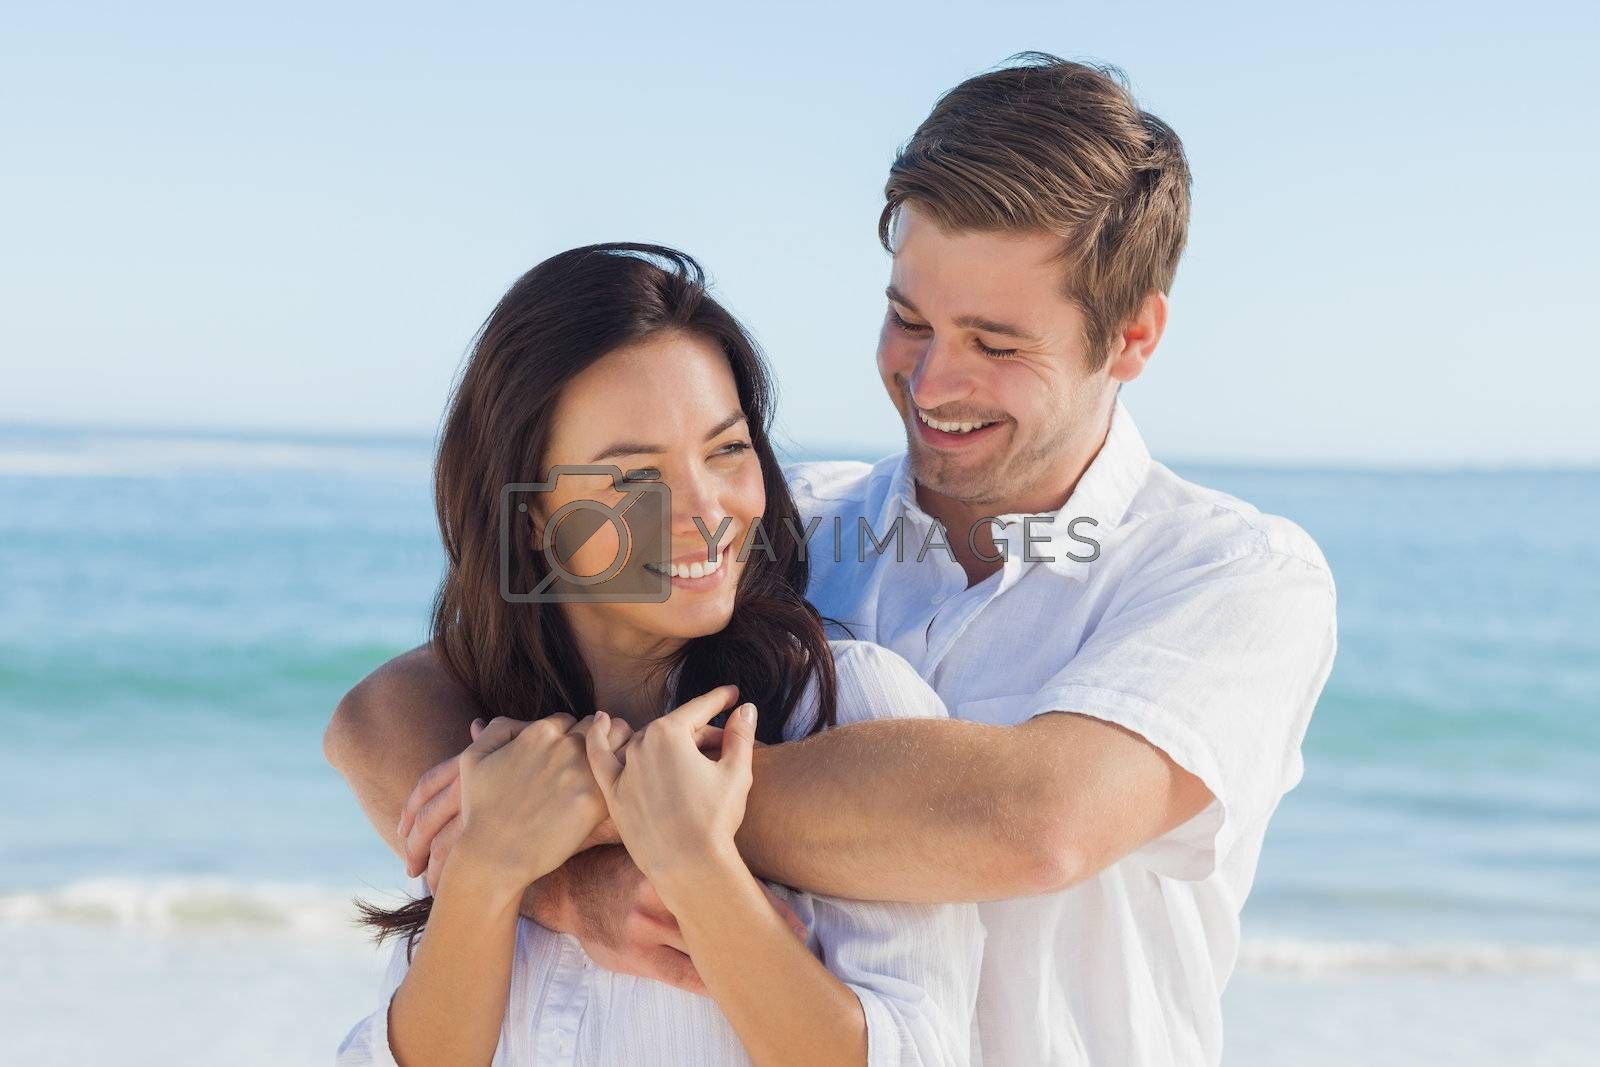 Cheerful couple relaxing on the beach during summer by Wavebreakmedia